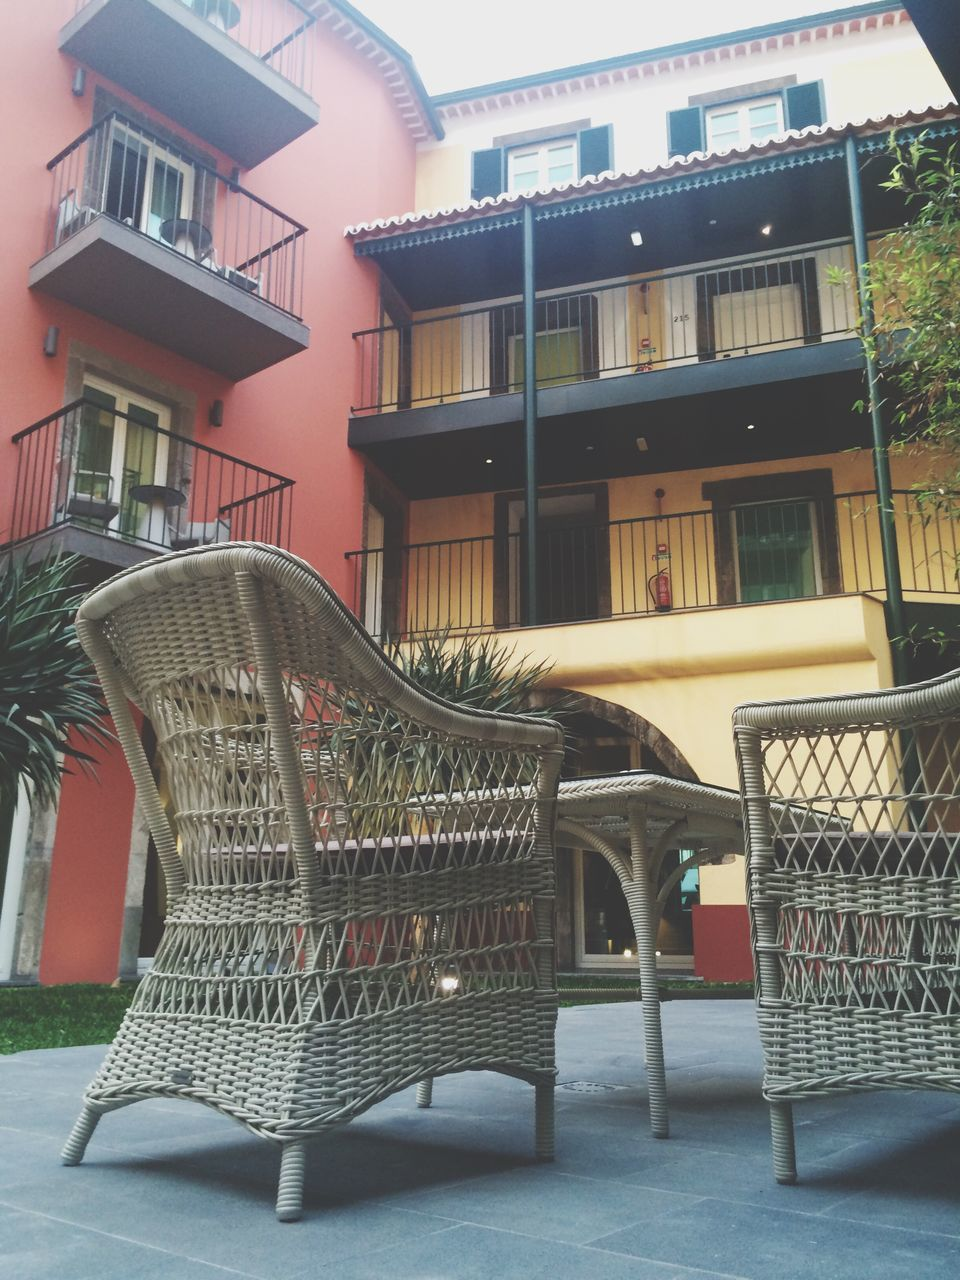 architecture, building exterior, built structure, chair, no people, balcony, outdoors, day